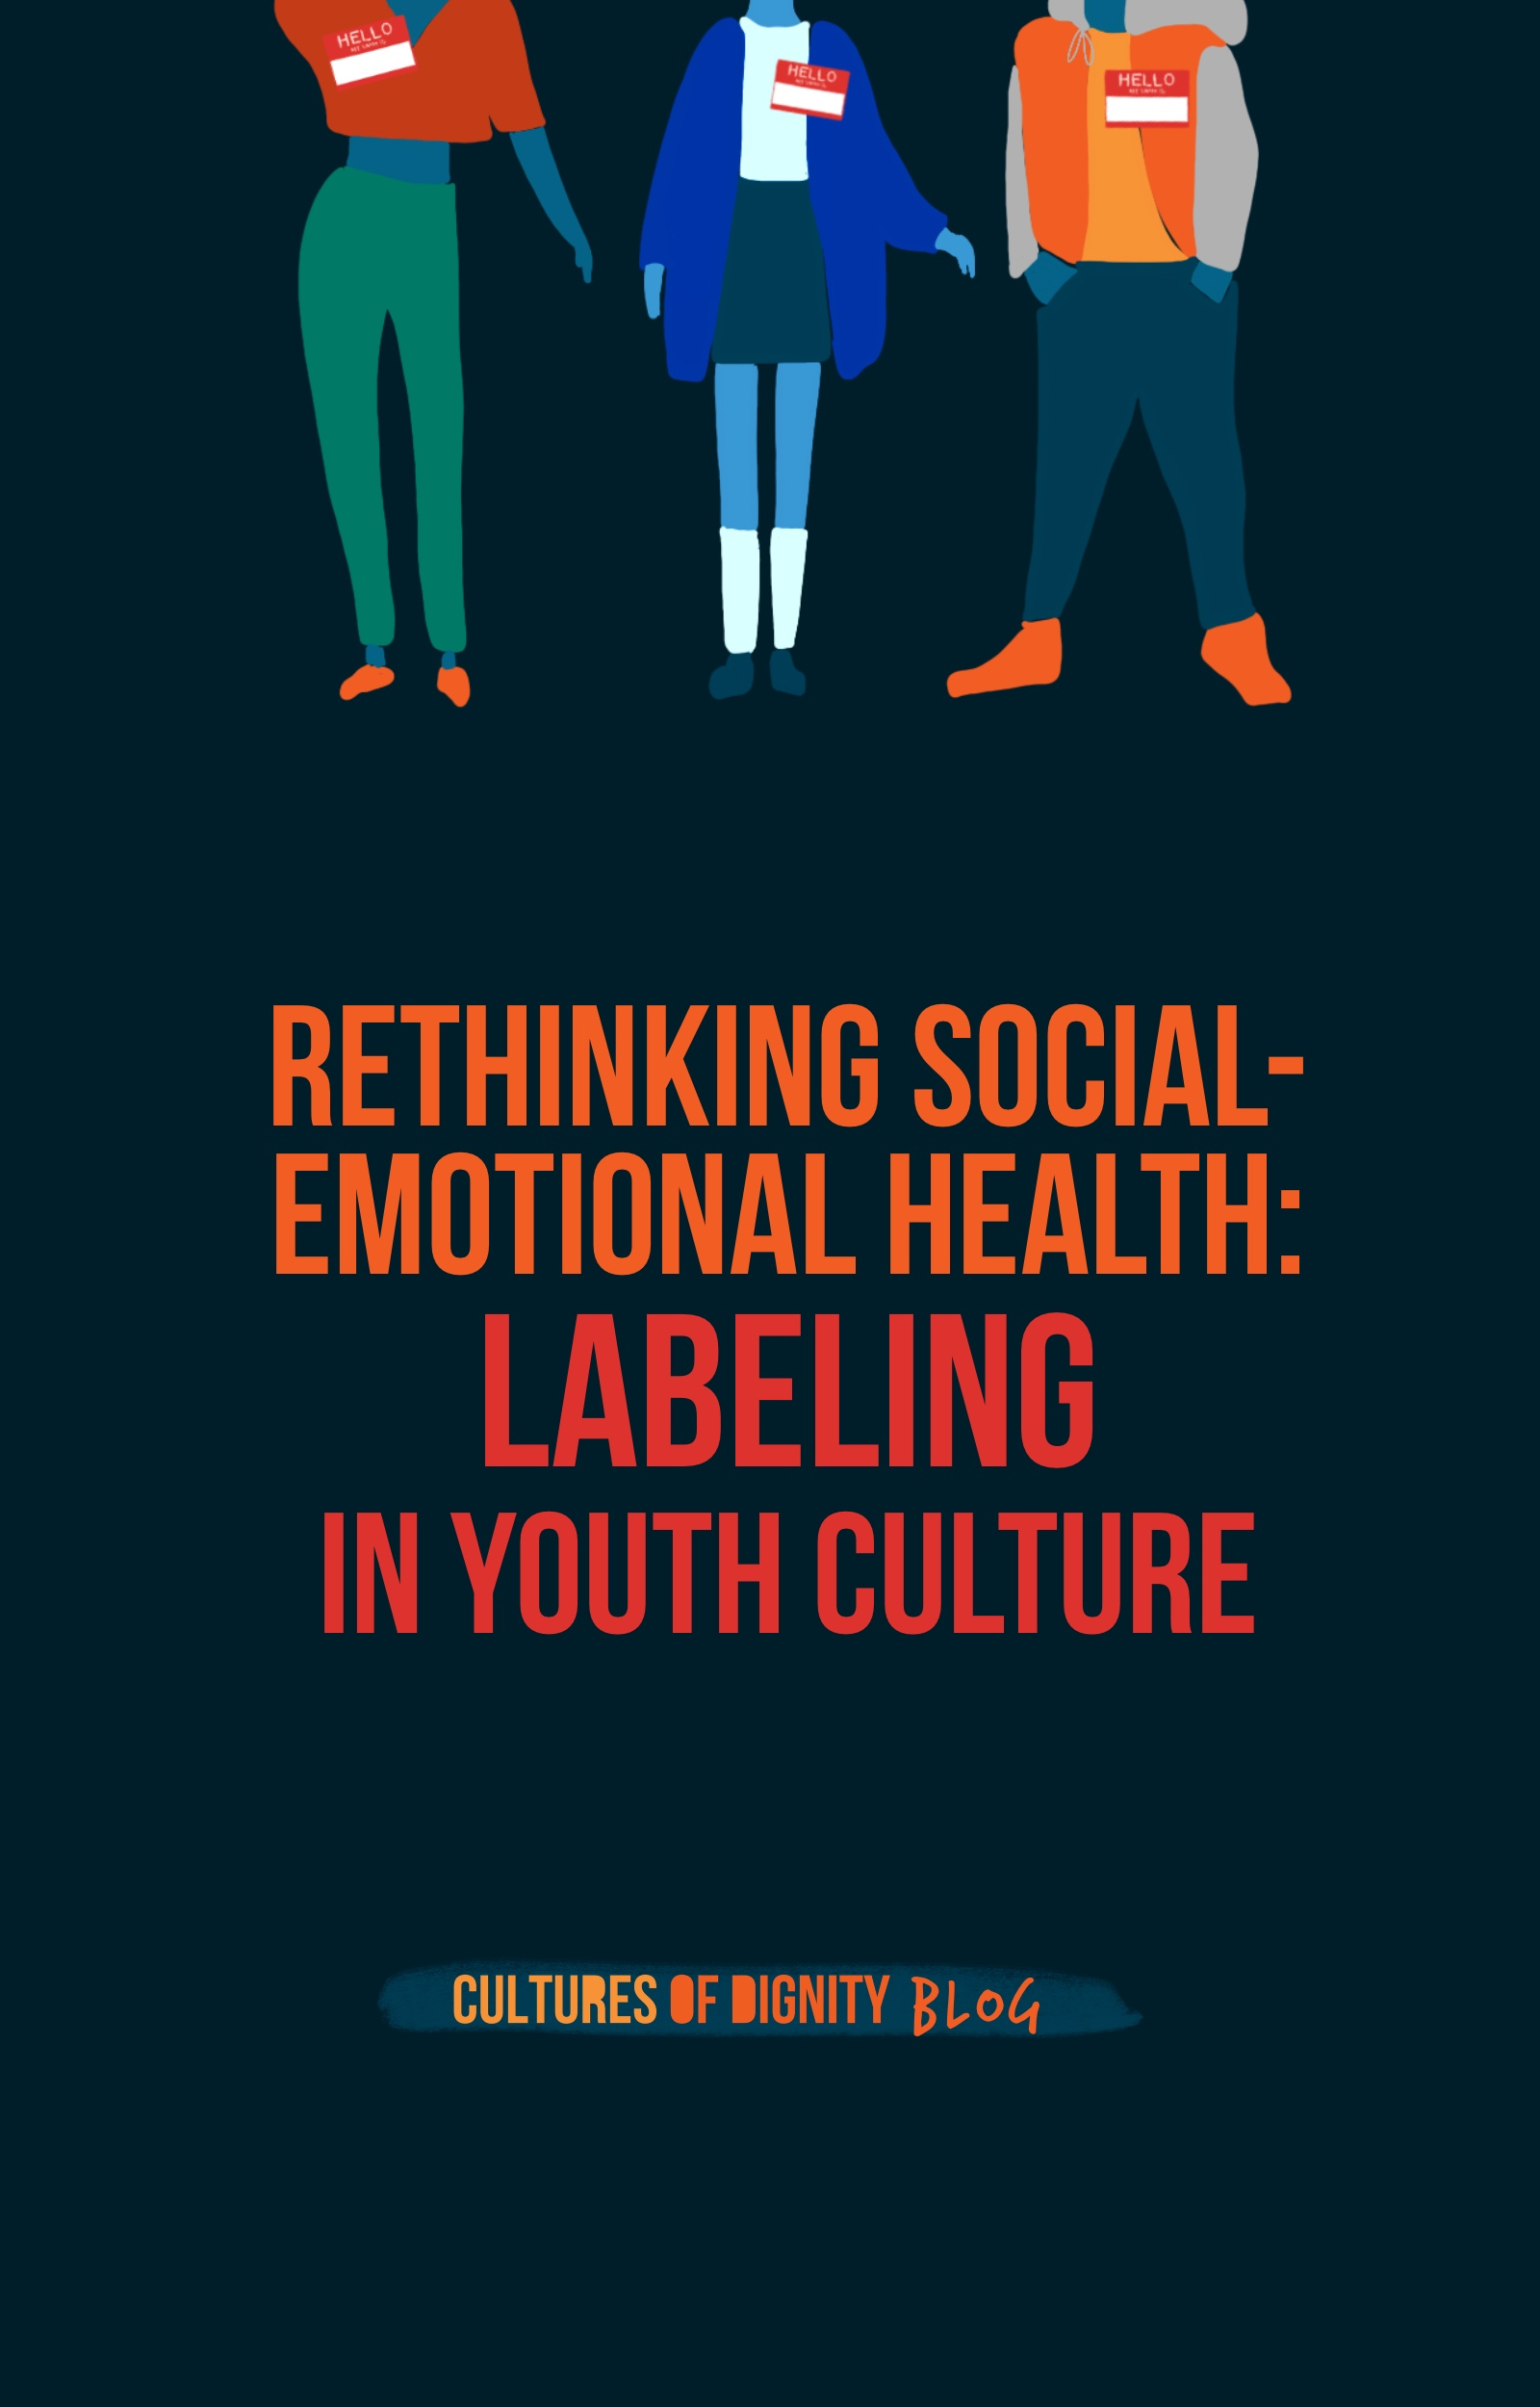 Rethinking Social-Emotional Health: Labels in Youth Culture